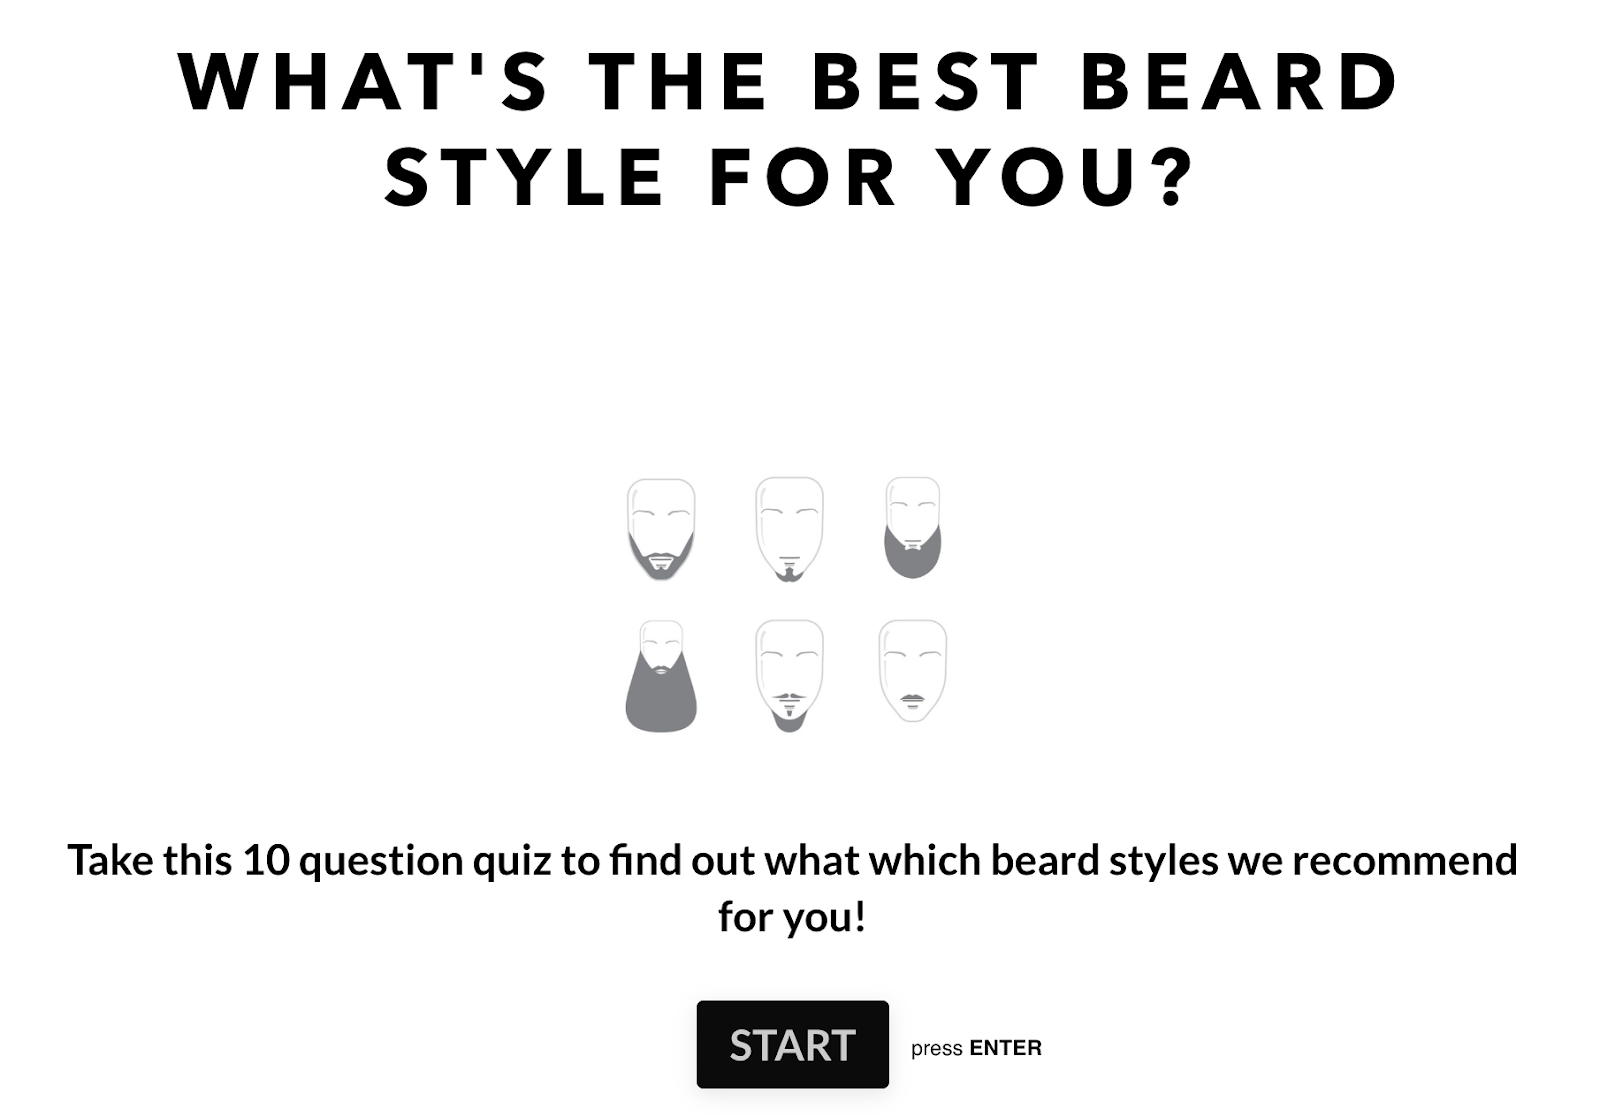 Screenshot of Beardbrand interactive beard style quiz